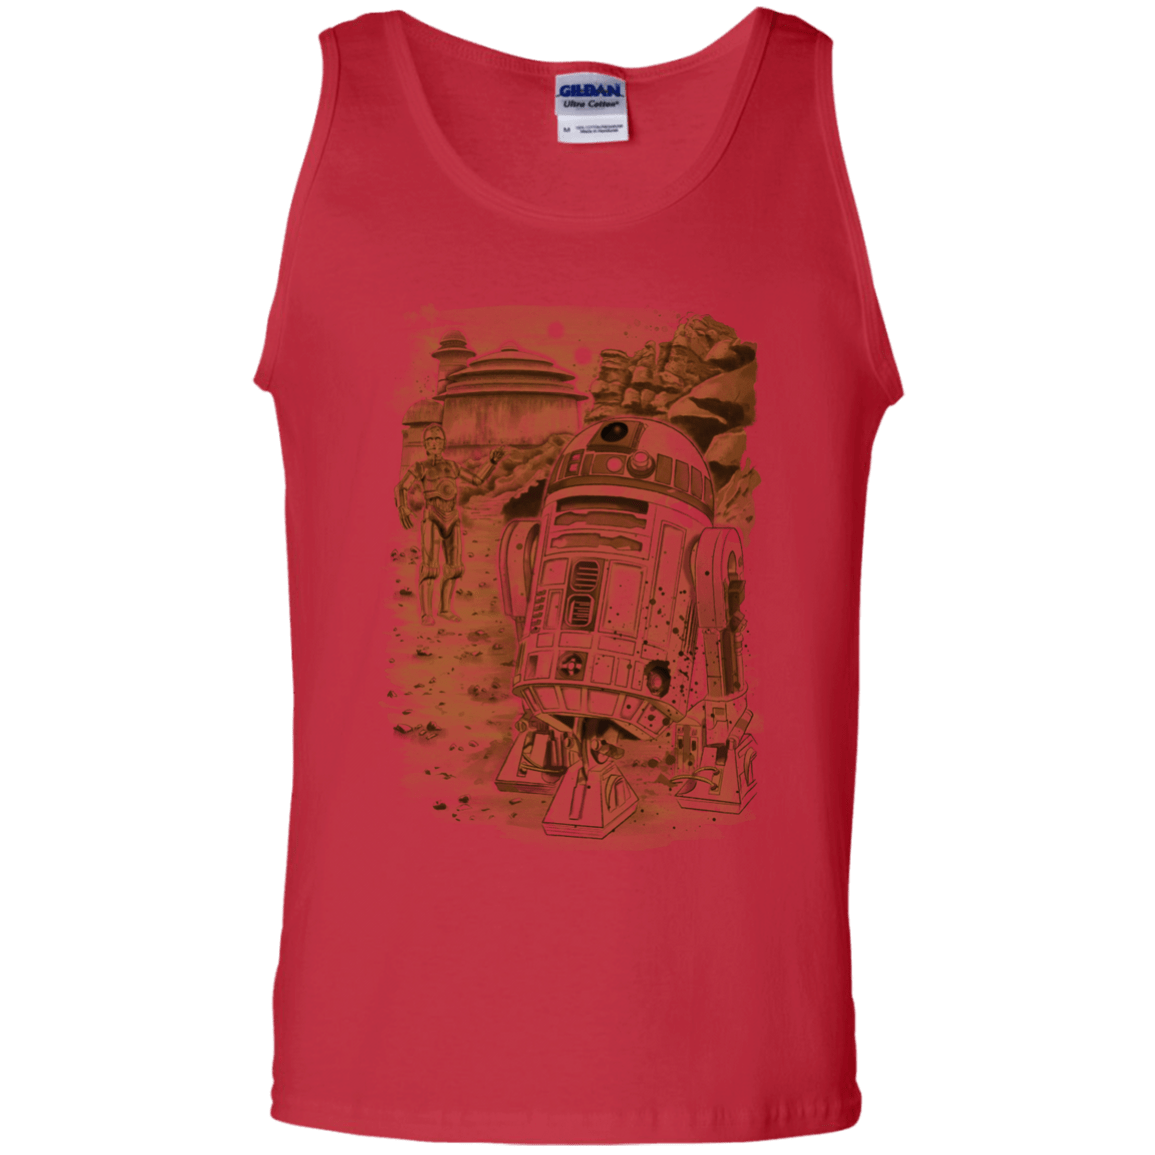 T-Shirts Red / S Mission to jabba palace Men's Tank Top